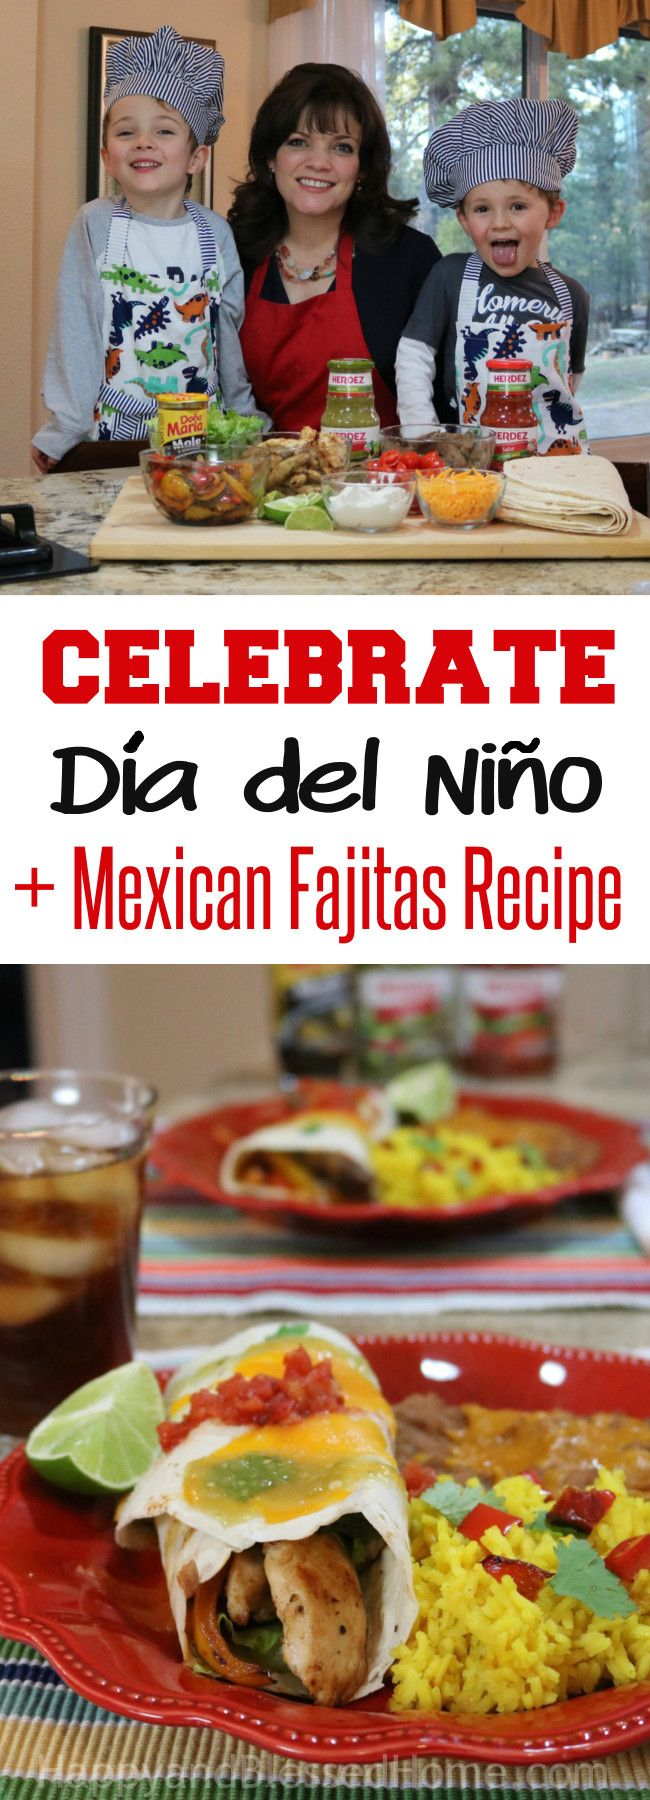 Have fun cooking with Kids with this Easy Mexican Fajitas Recipe and celebrate Día del Niño! Would you like to enter to WIN a prize valued at $1,000? Enter the Celebrate Your Chef Giveaway on the HERDEZ® Brand Facebook and Instagram  pages by taking a photo of you and your child making a meal together to be entered to win. Ad